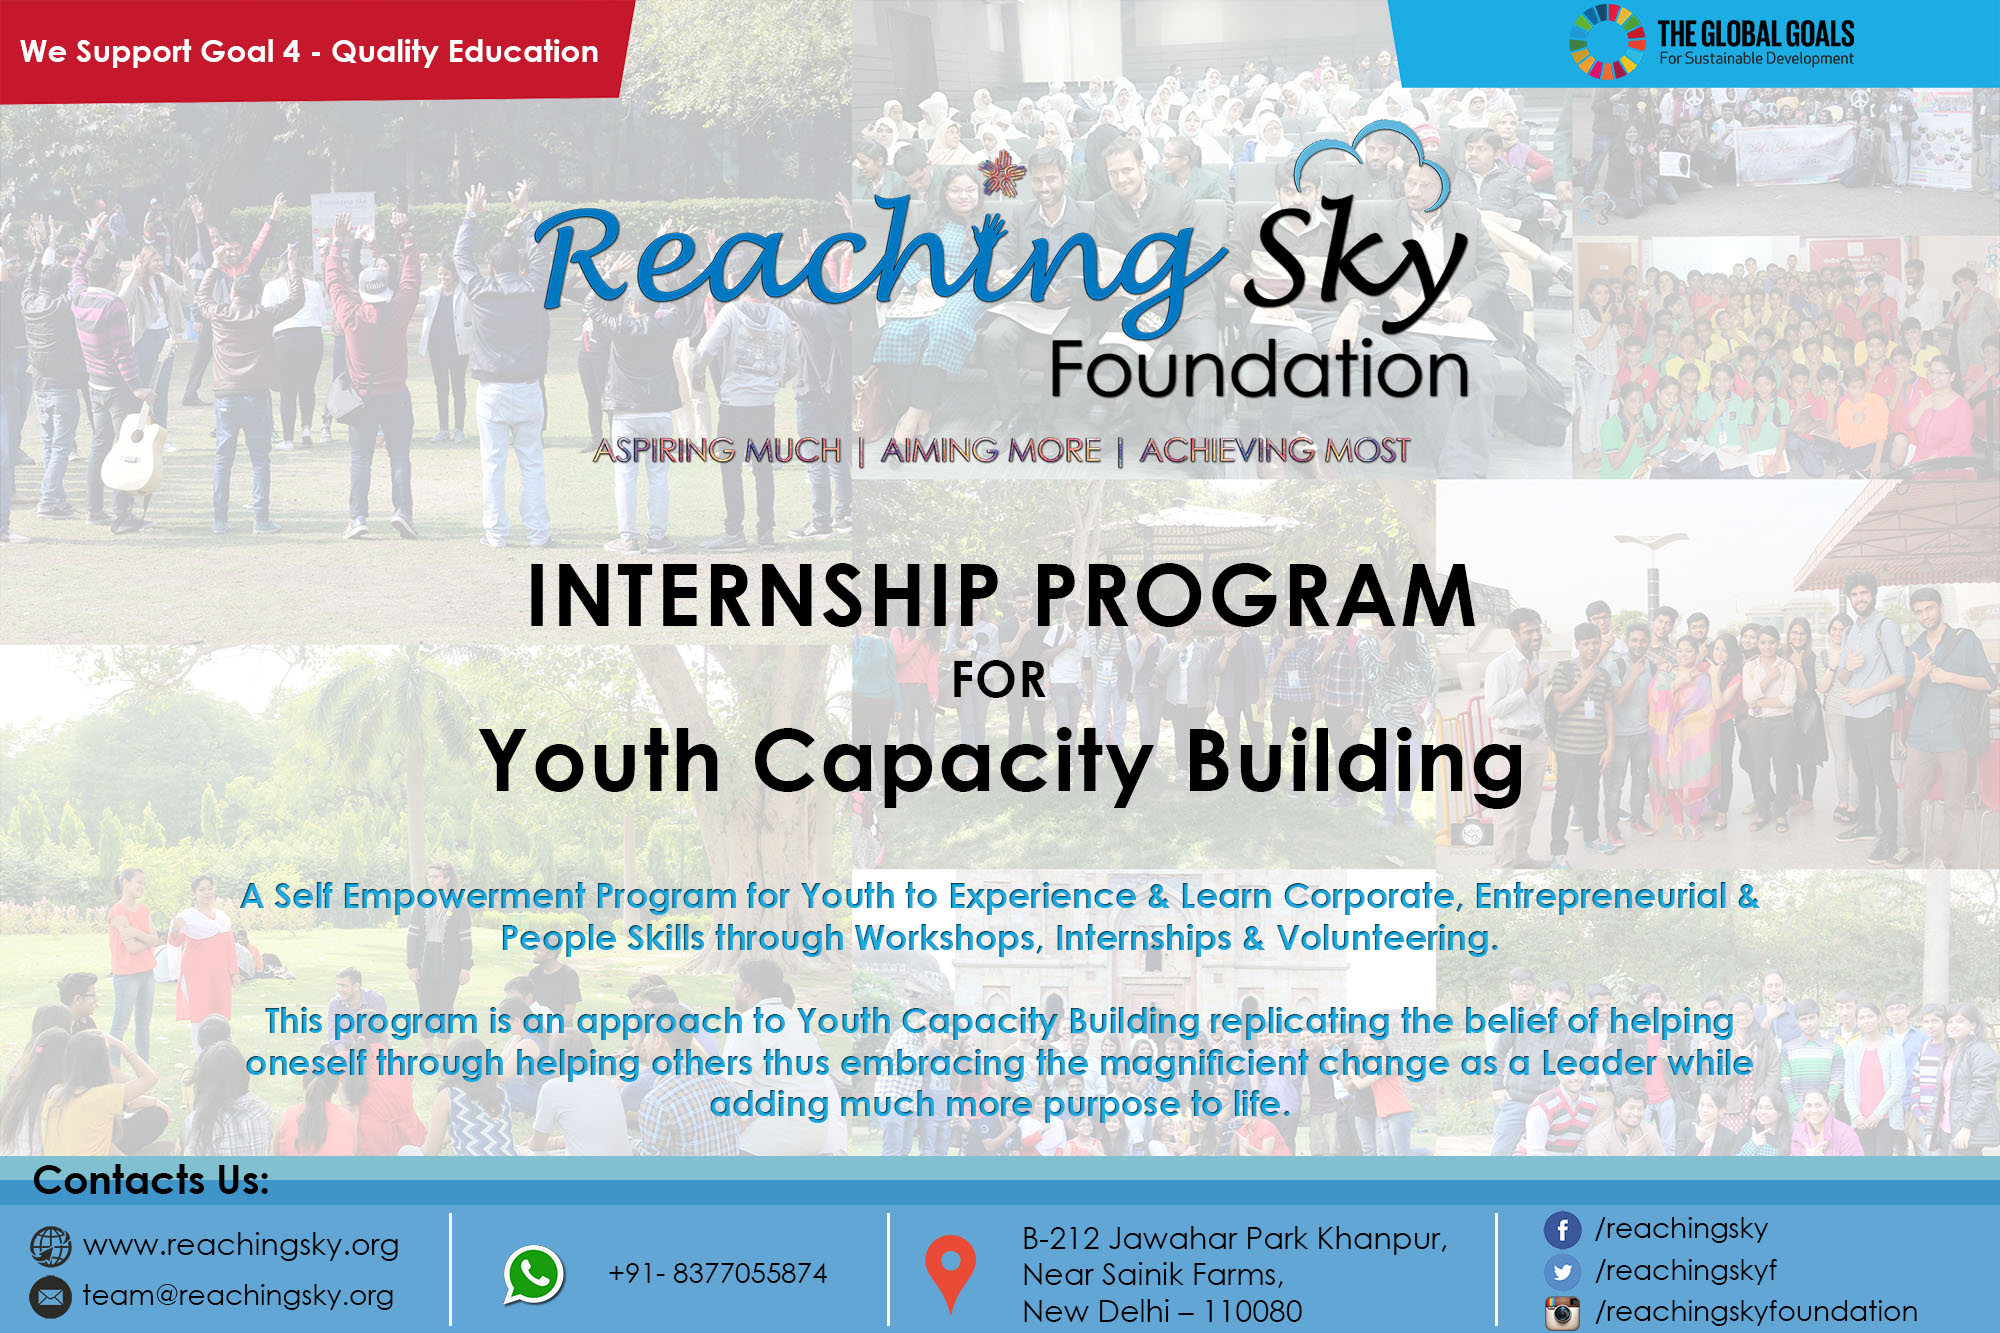 Internship Program for Youth Capacity Building